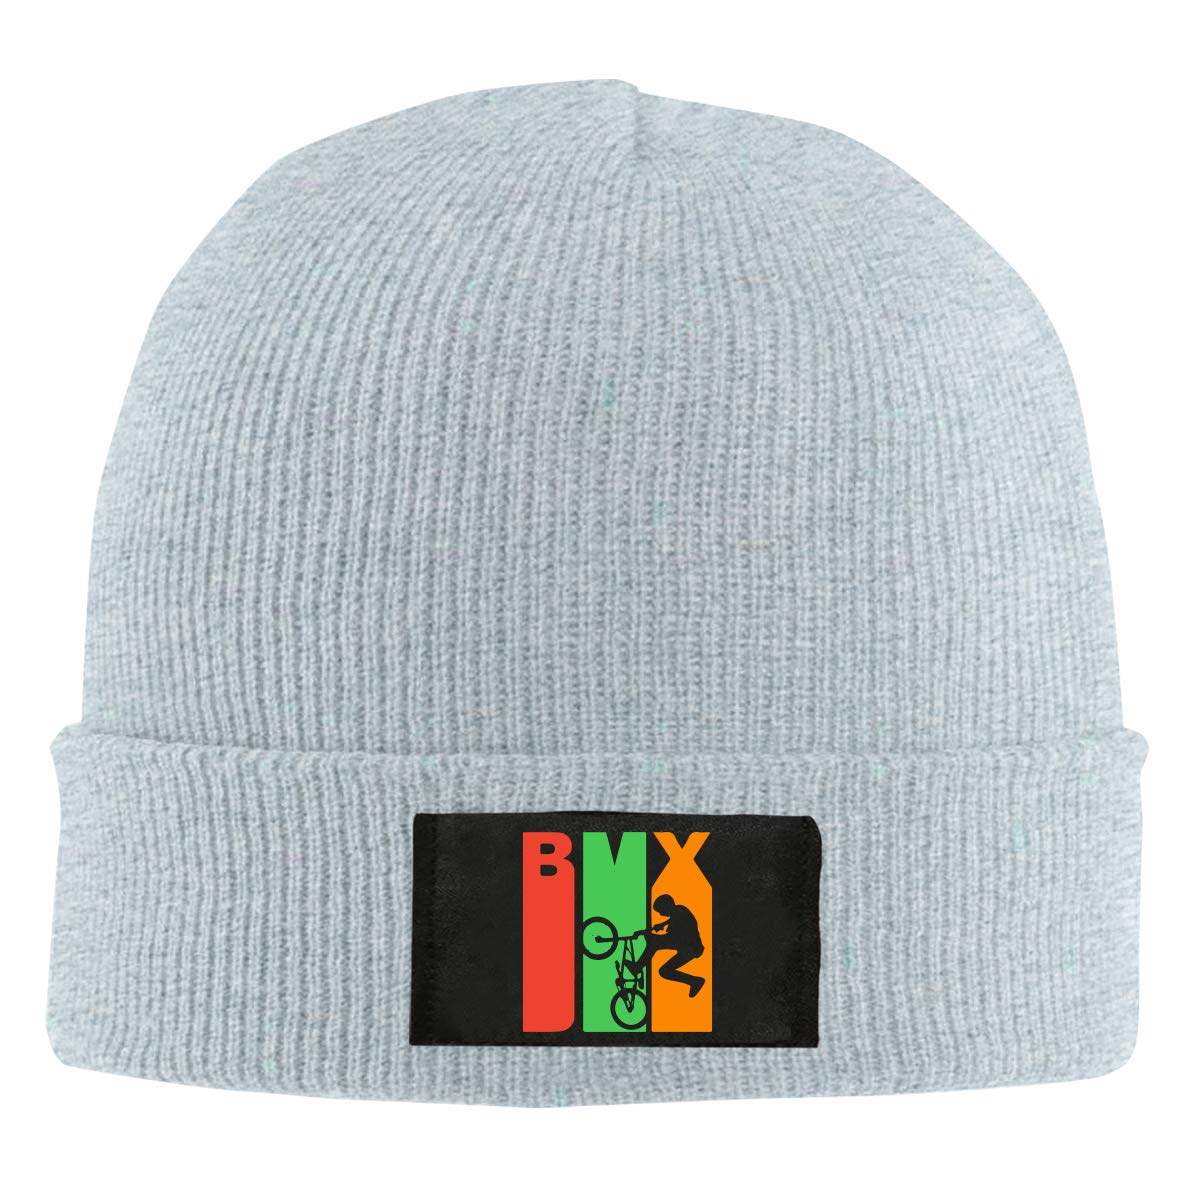 Retro 1970s Style BMX Silhouette Women and Men Knitted Hat Winter Warm Snowboarding Hat